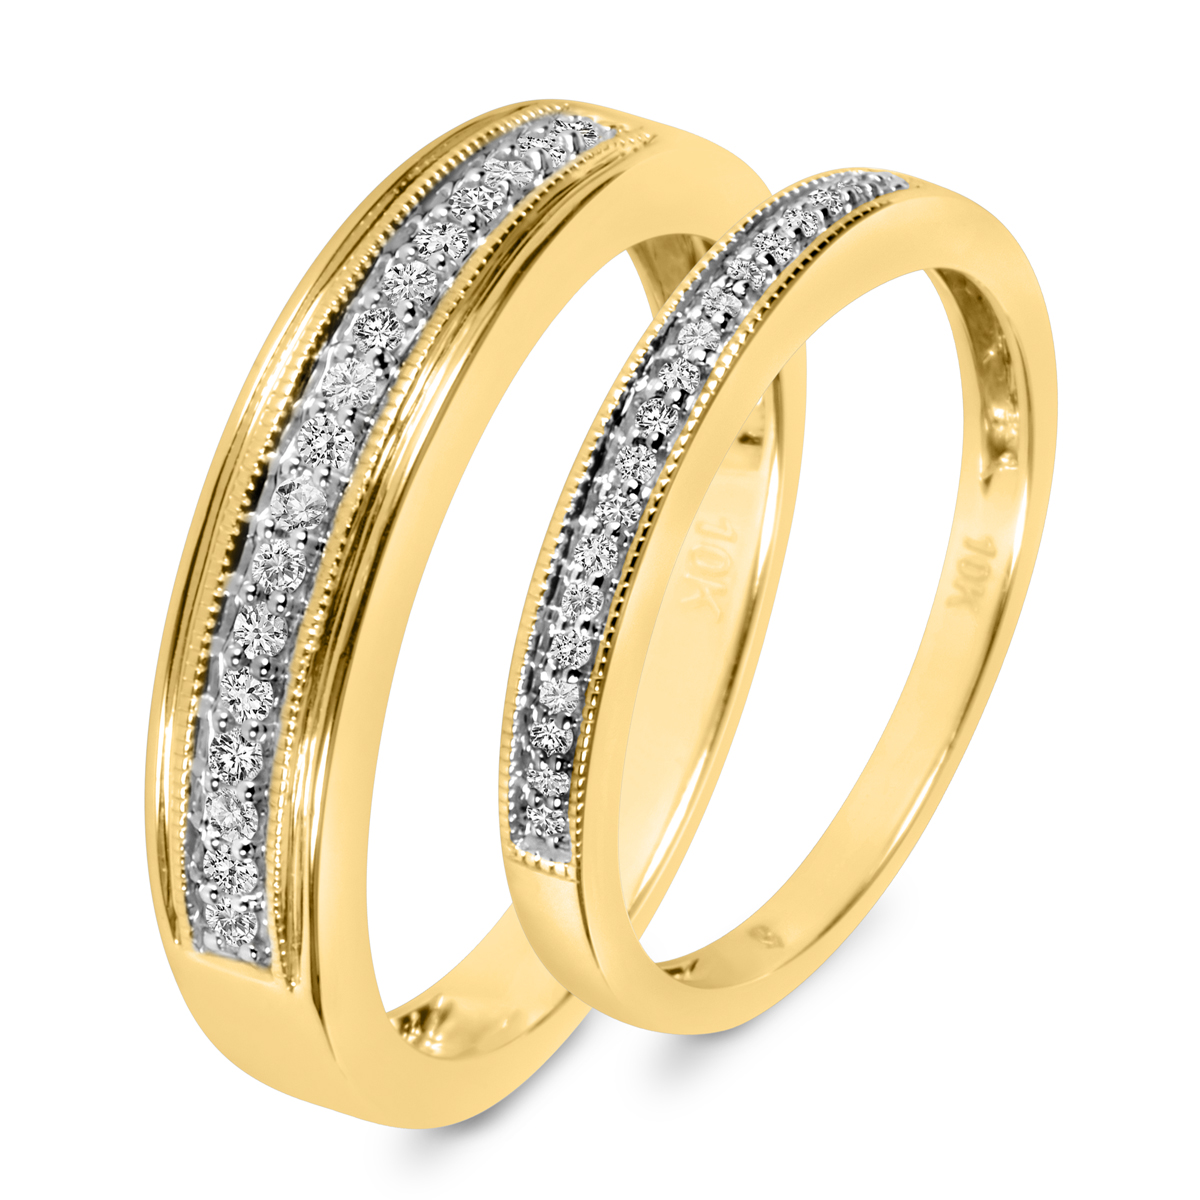 1/4 CT. T.W. Round Cut Diamond His And Hers Wedding Band Set 10K Yellow Gold-